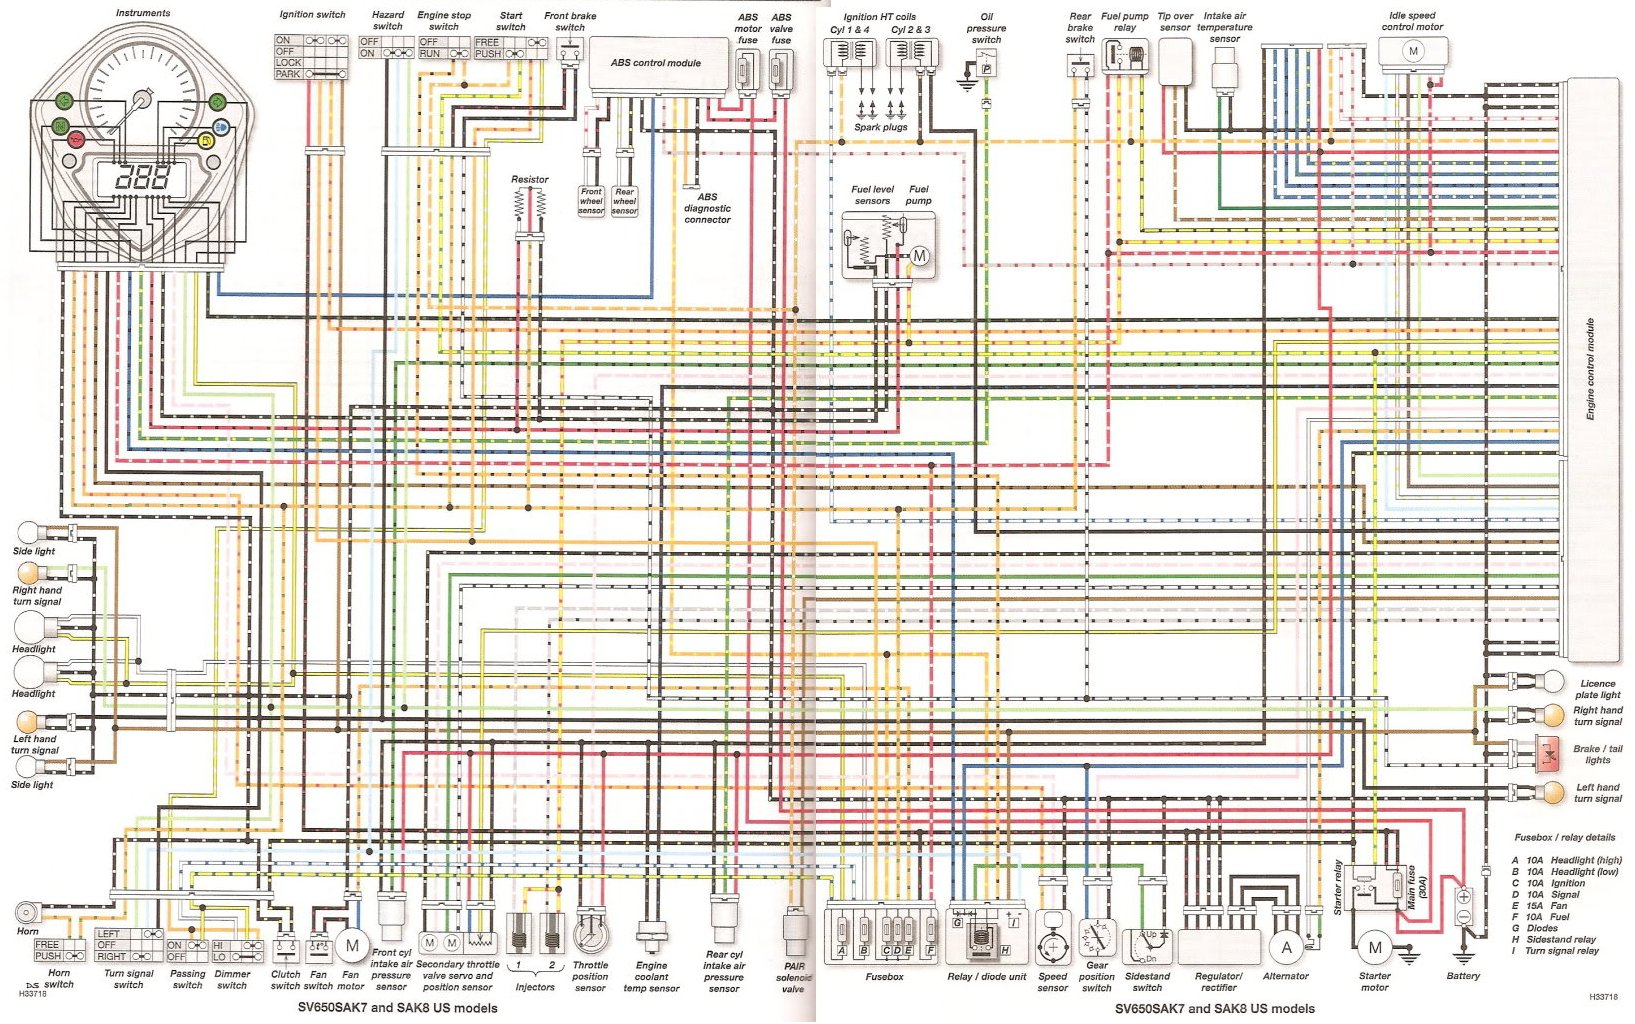 2005 cbr wiring diagram wiring diagrams yamaha wiring diagram 2005 cbr600rr wiring diagram [ 1635 x 1024 Pixel ]